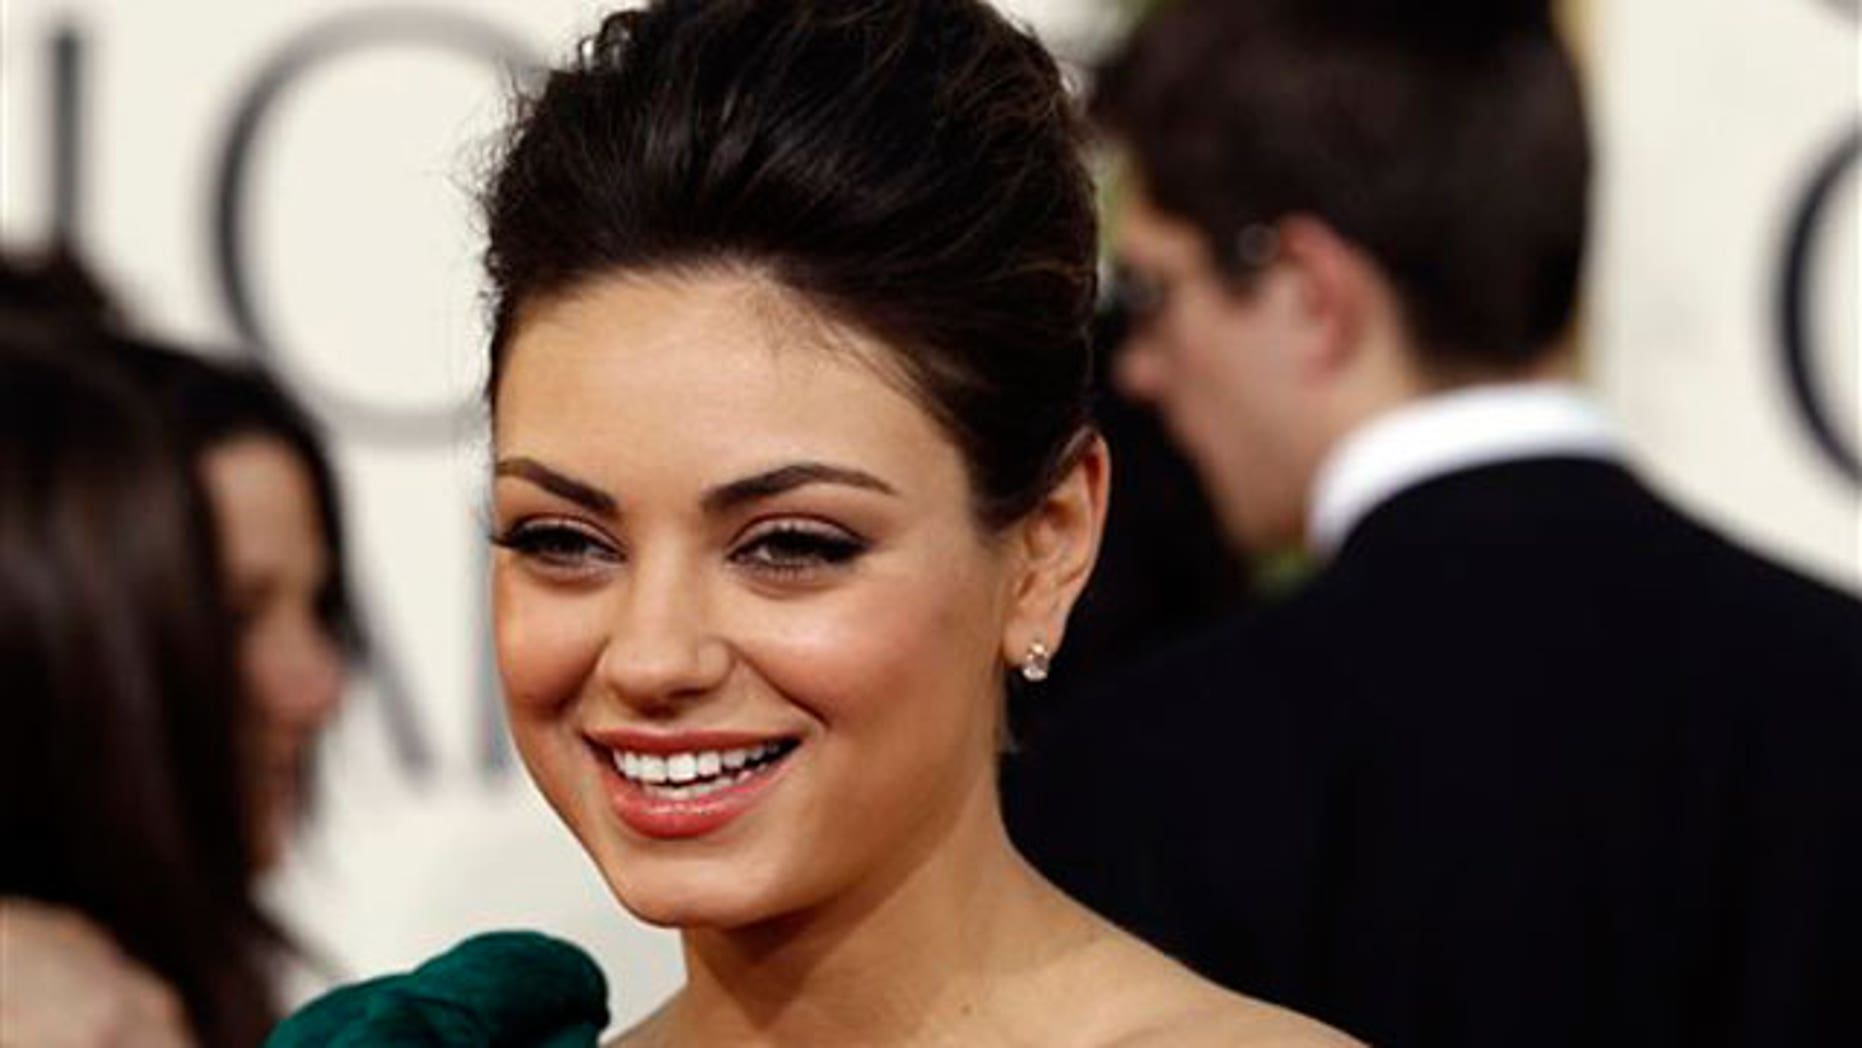 Jan. 16: Mila Kunis walks the red carpet at the Golden Globe Awards.